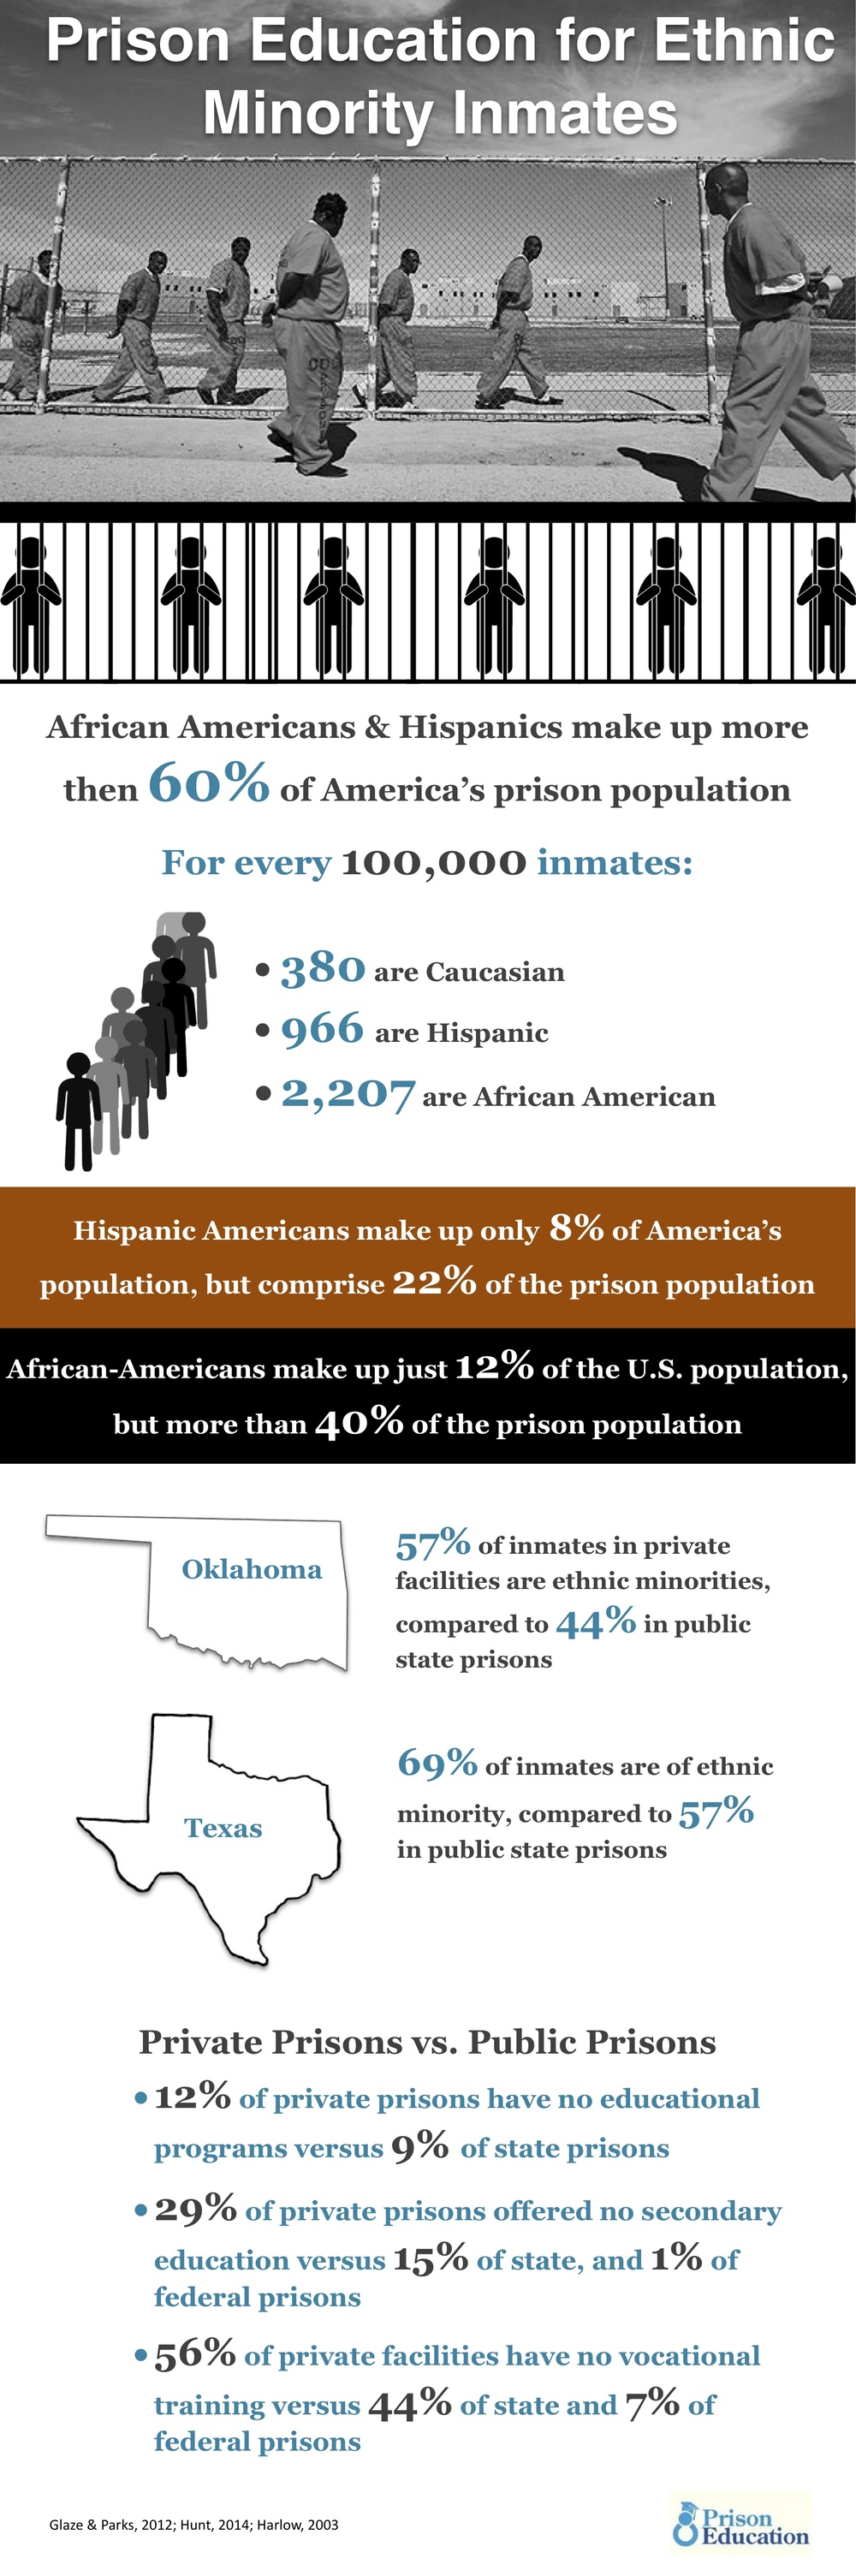 Ethnic minorities are overrepresented in American prison populations, especially African-Americans and Hispanic Americans, who make up more than 60% of the prison population.